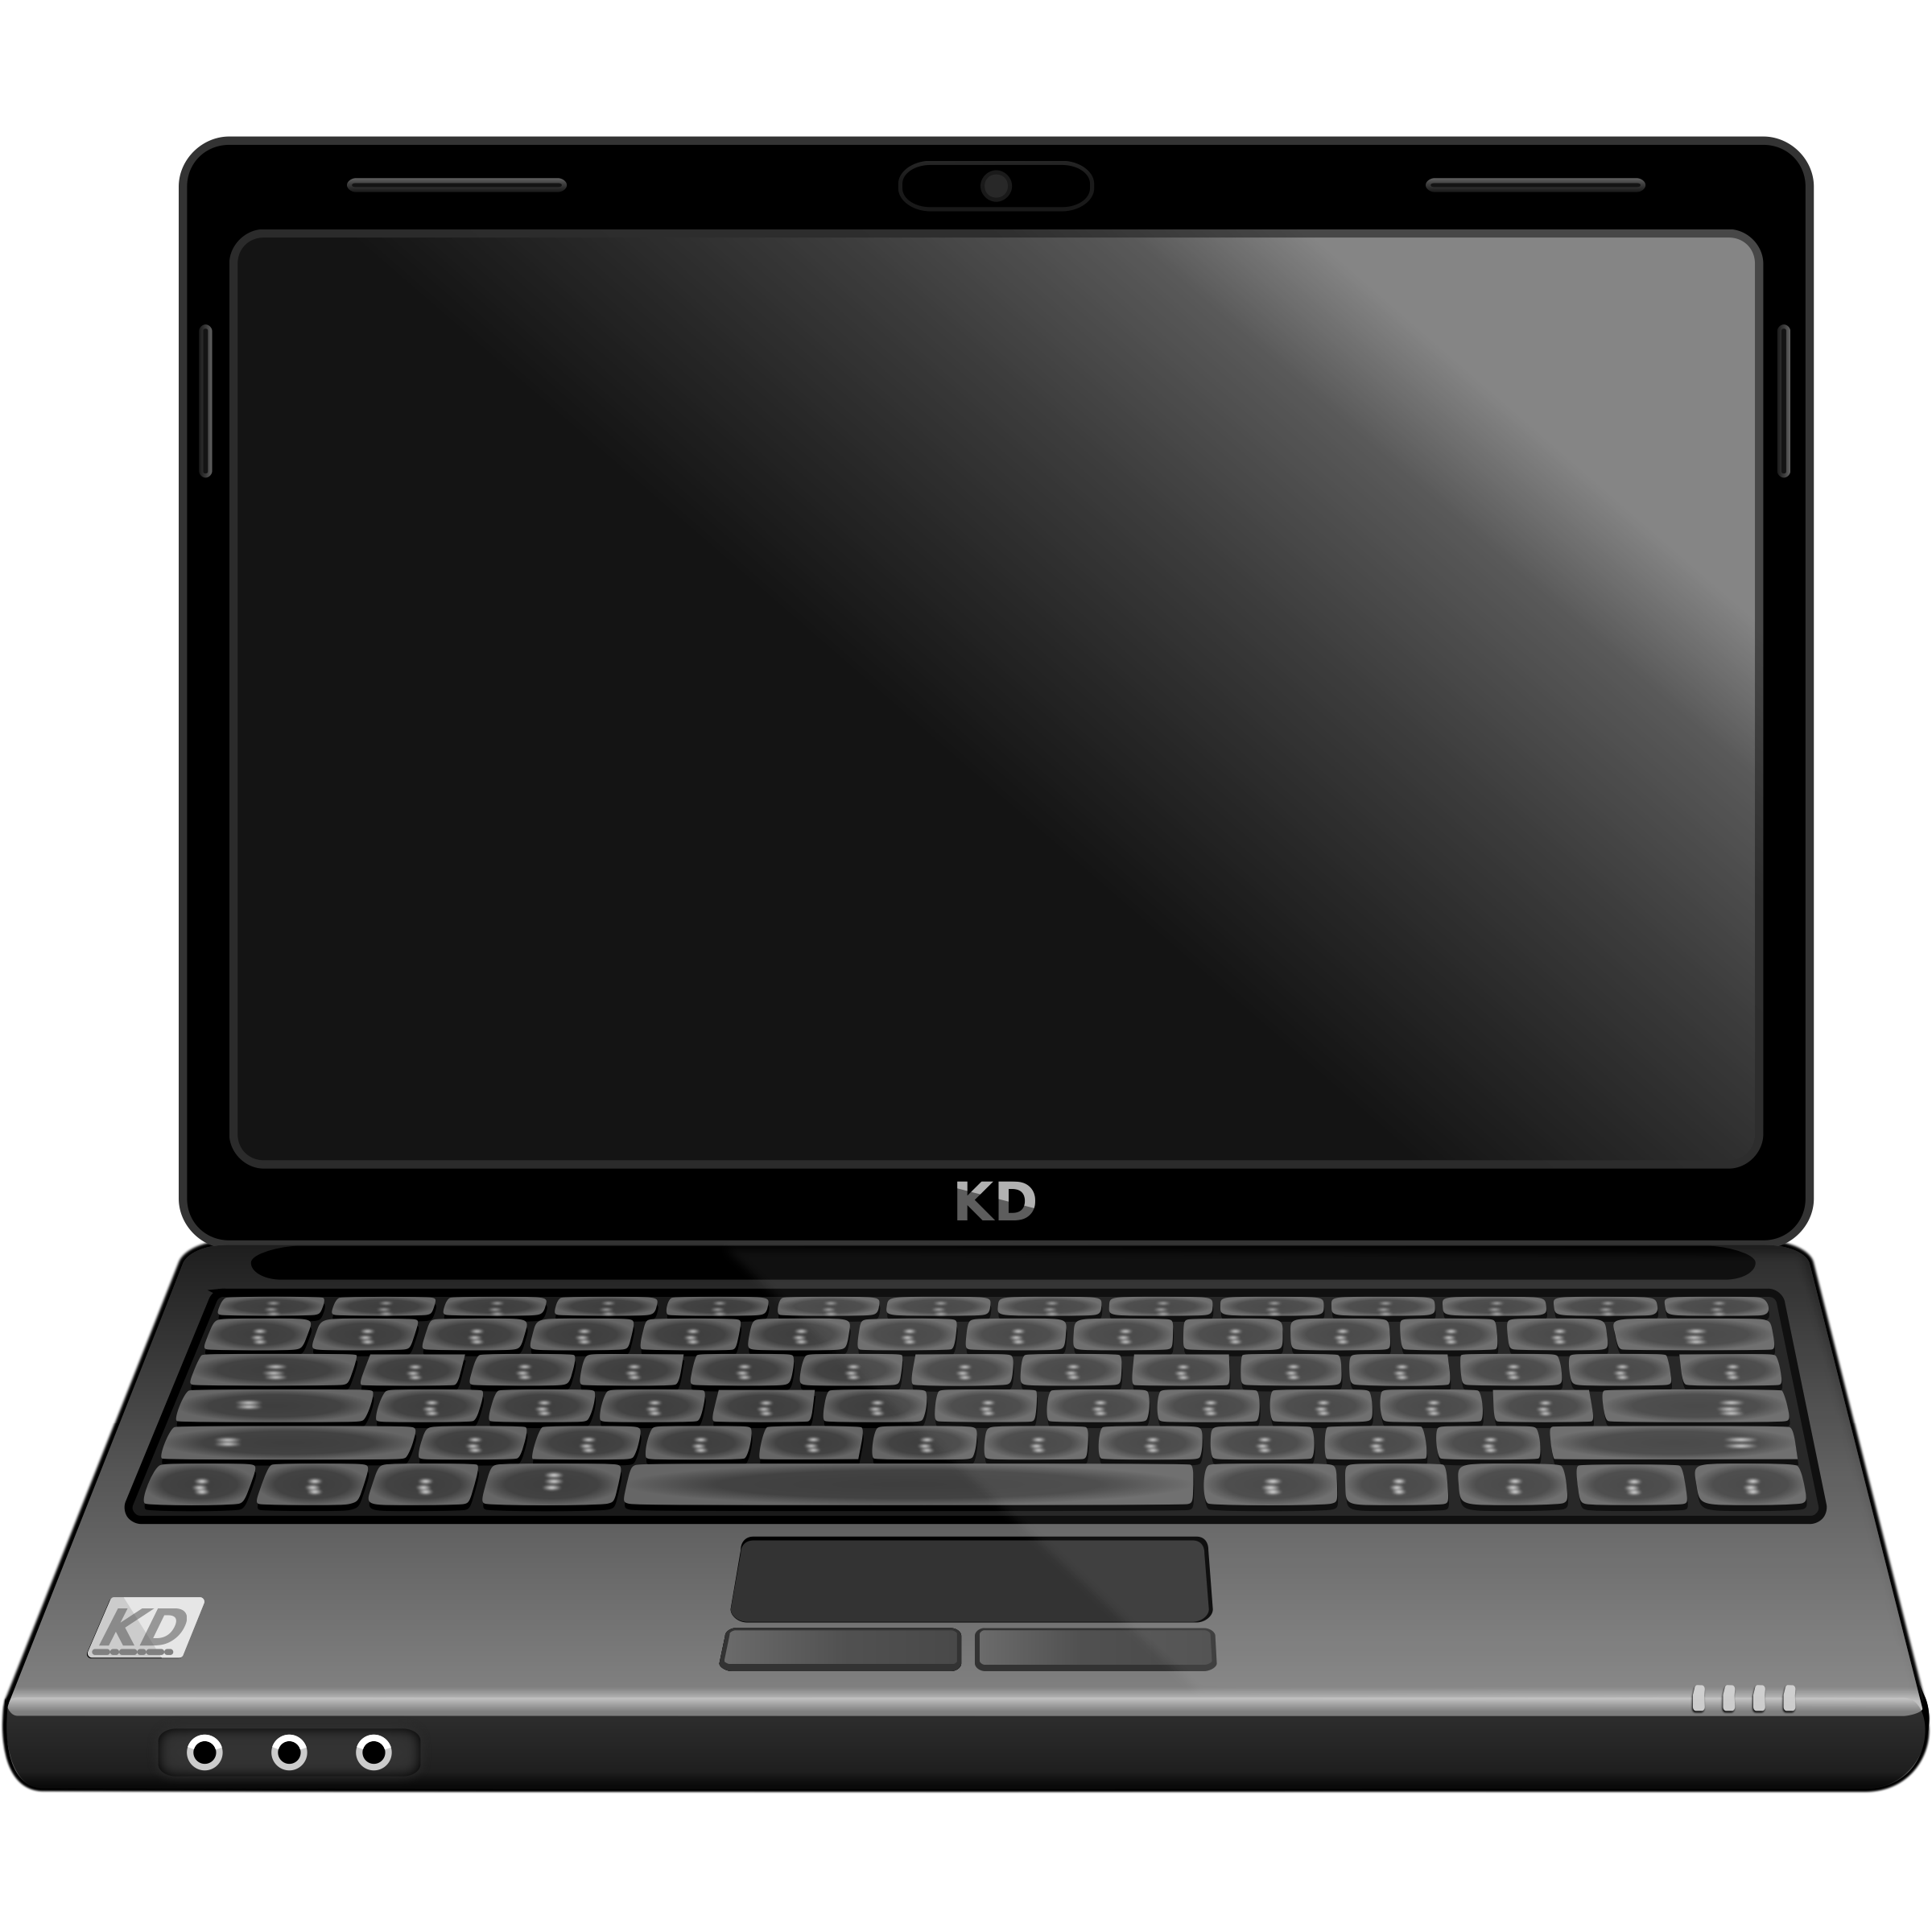 uploads laptop laptop PNG5915 3